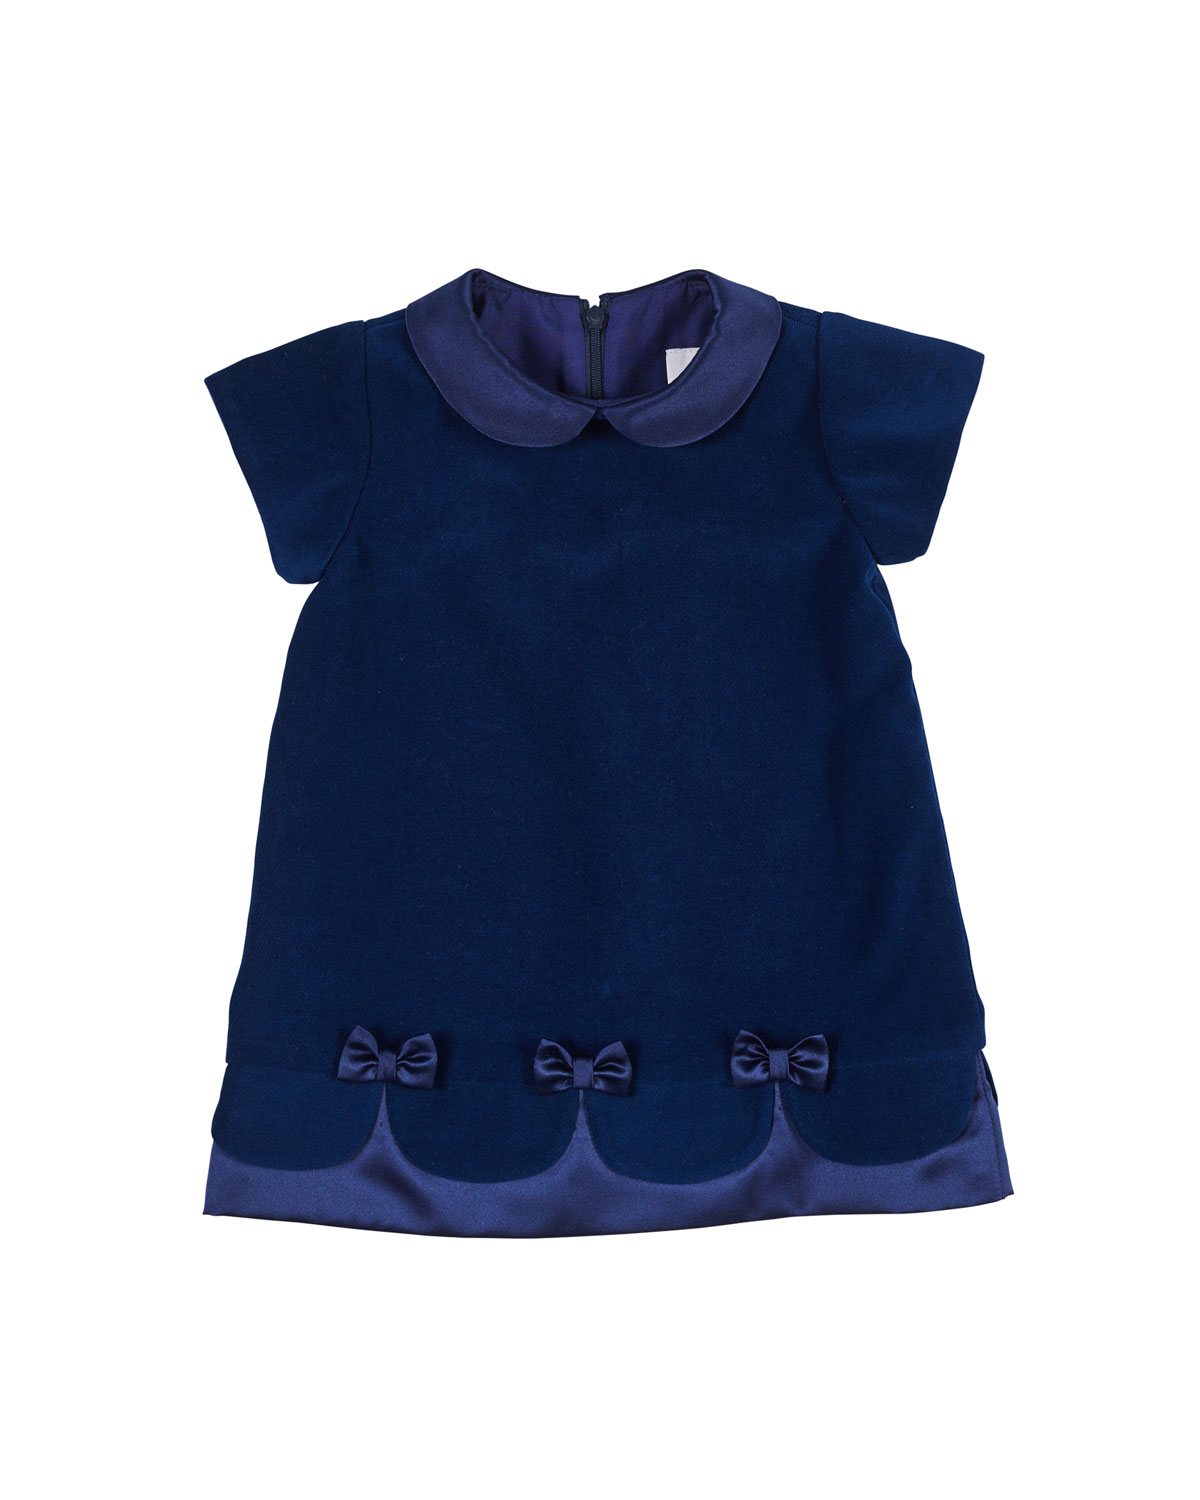 Royal Treatment Velvet Dress Size 624 Months